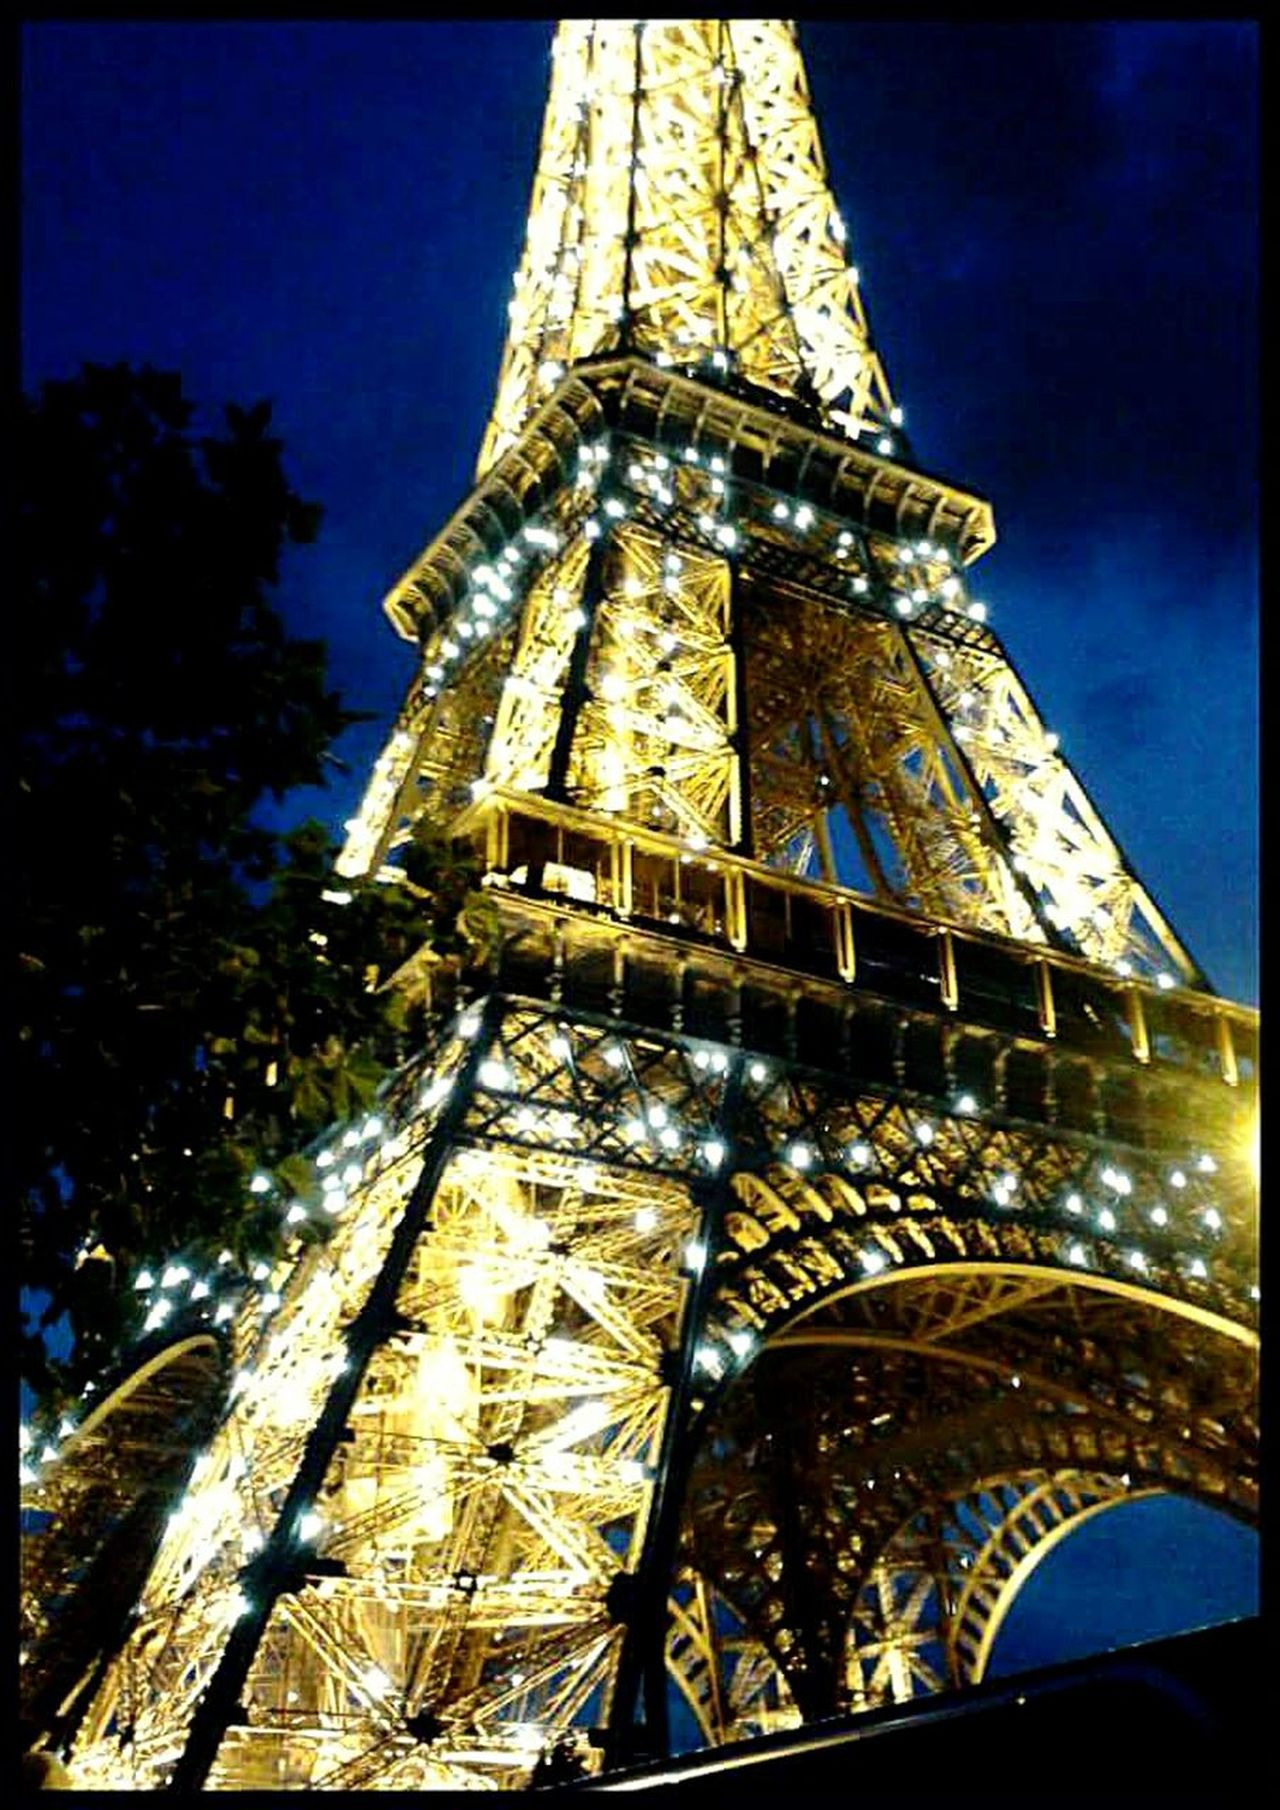 Eiffel Tower Catching The Moment Livebeautifully Travel Travel Photography Paris, France  Paris Art Photography ArtOfLiving Illuminated Travel Destinations Sky Light And Shadow Night Lights Night Out Colors Catch The Moment Magical Romantic Tower Excellent Shot Awesome Photography ArtWork Details The City Light EyeEmNewHere